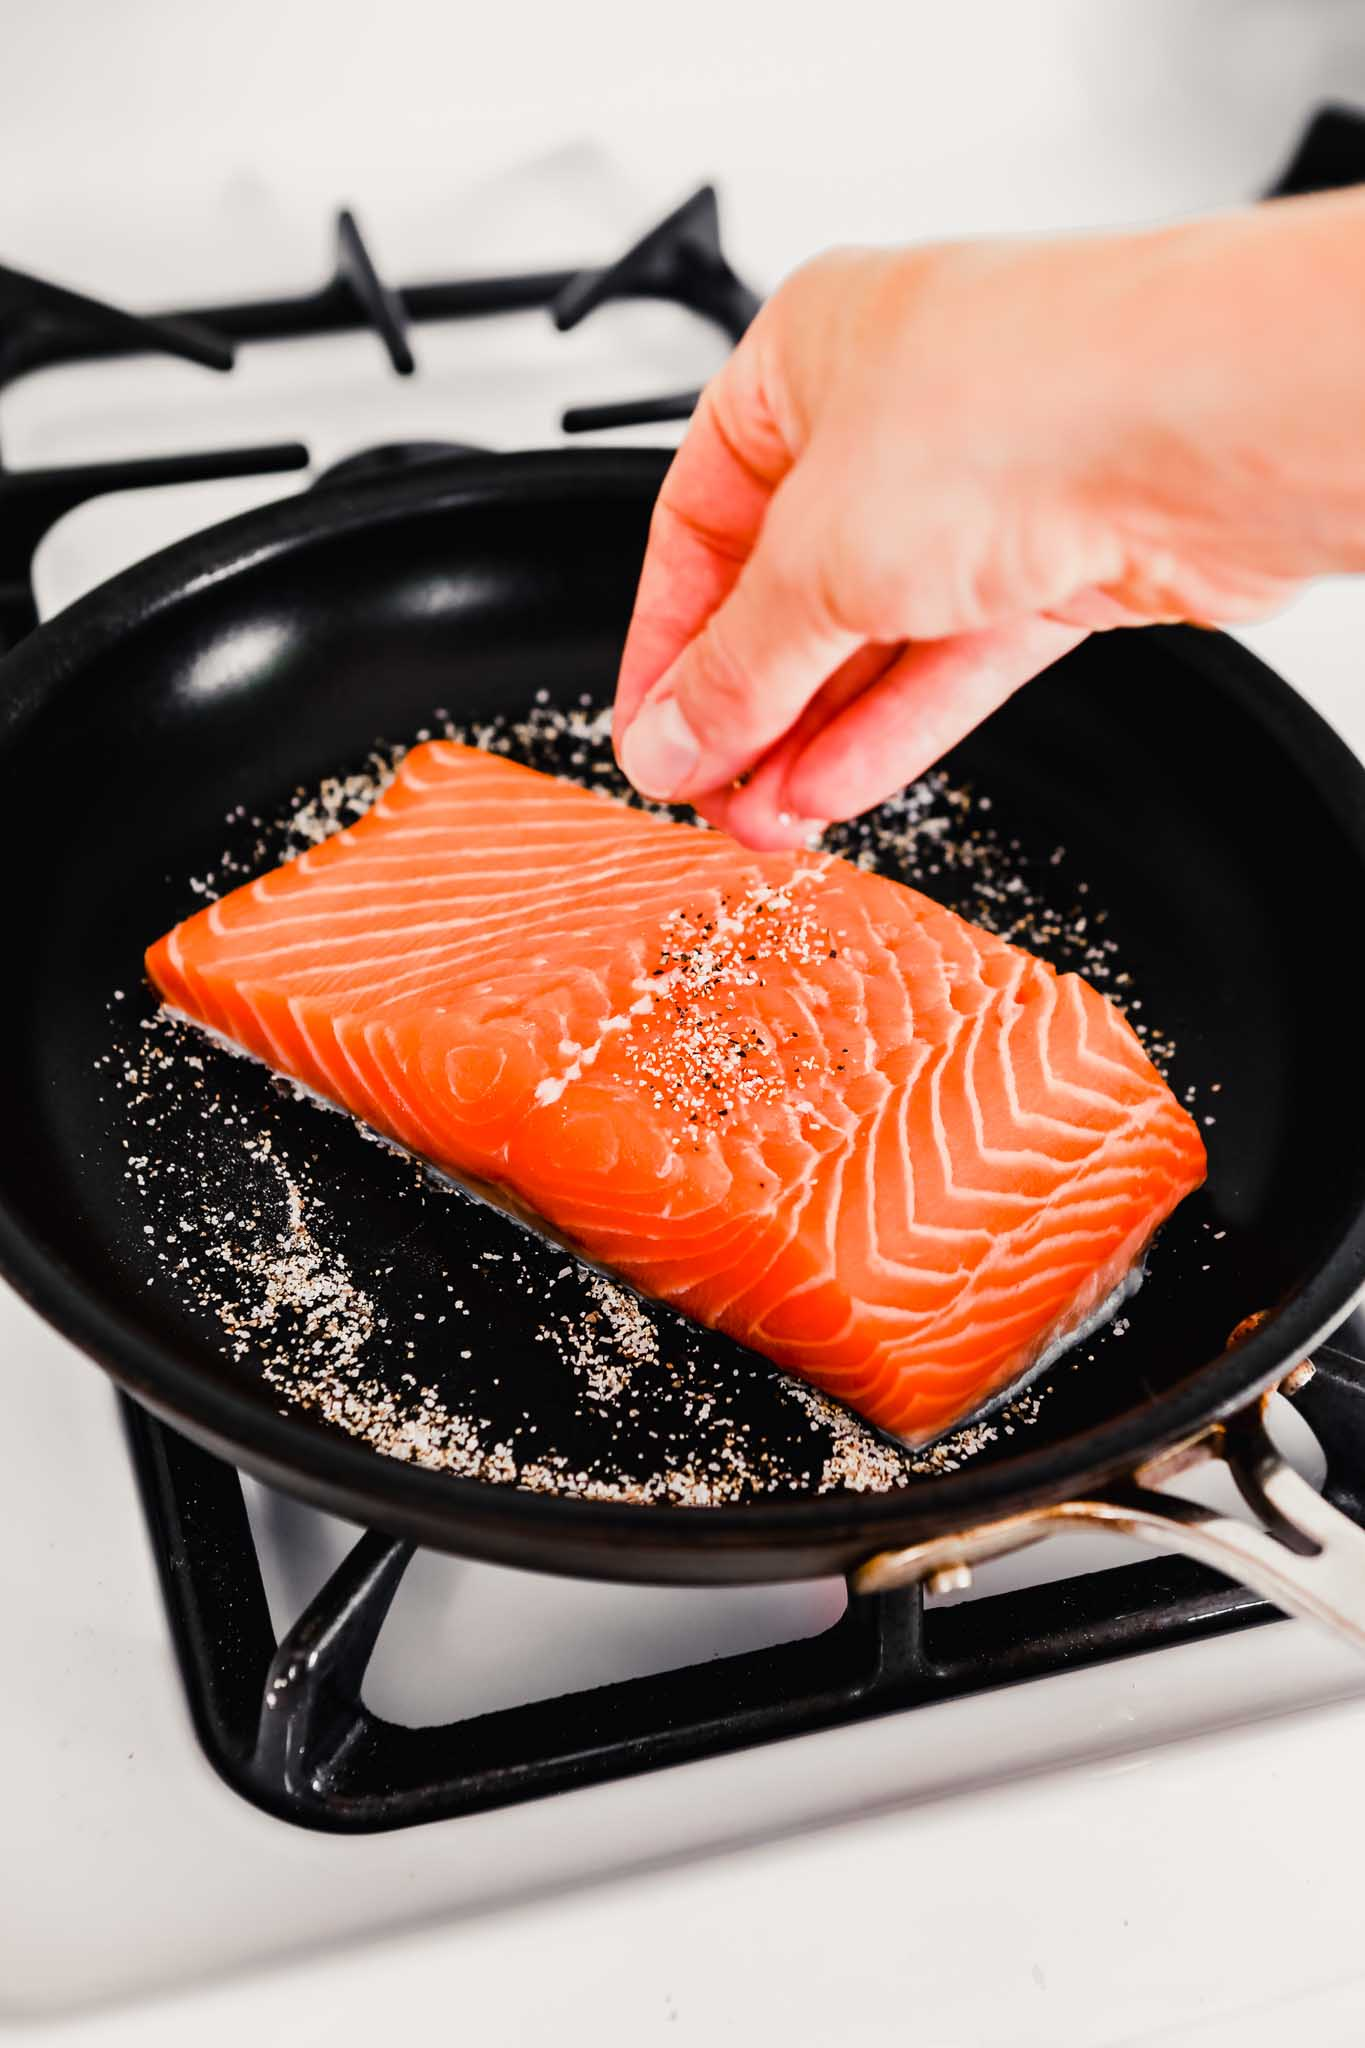 Photo of someone sprinkling a filet of salmon with salt and pepper.